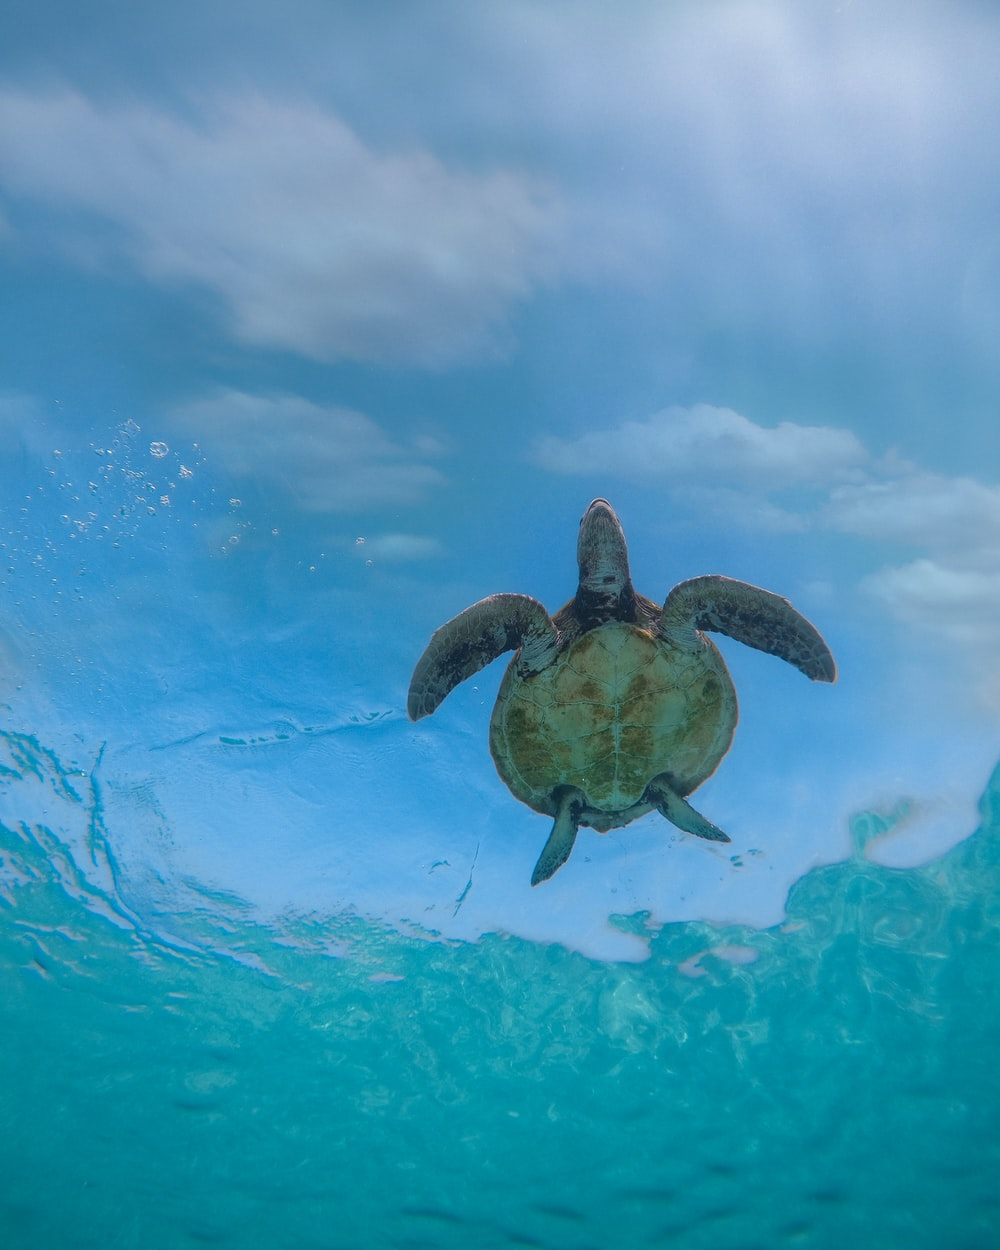 brown turtle in water during daytime